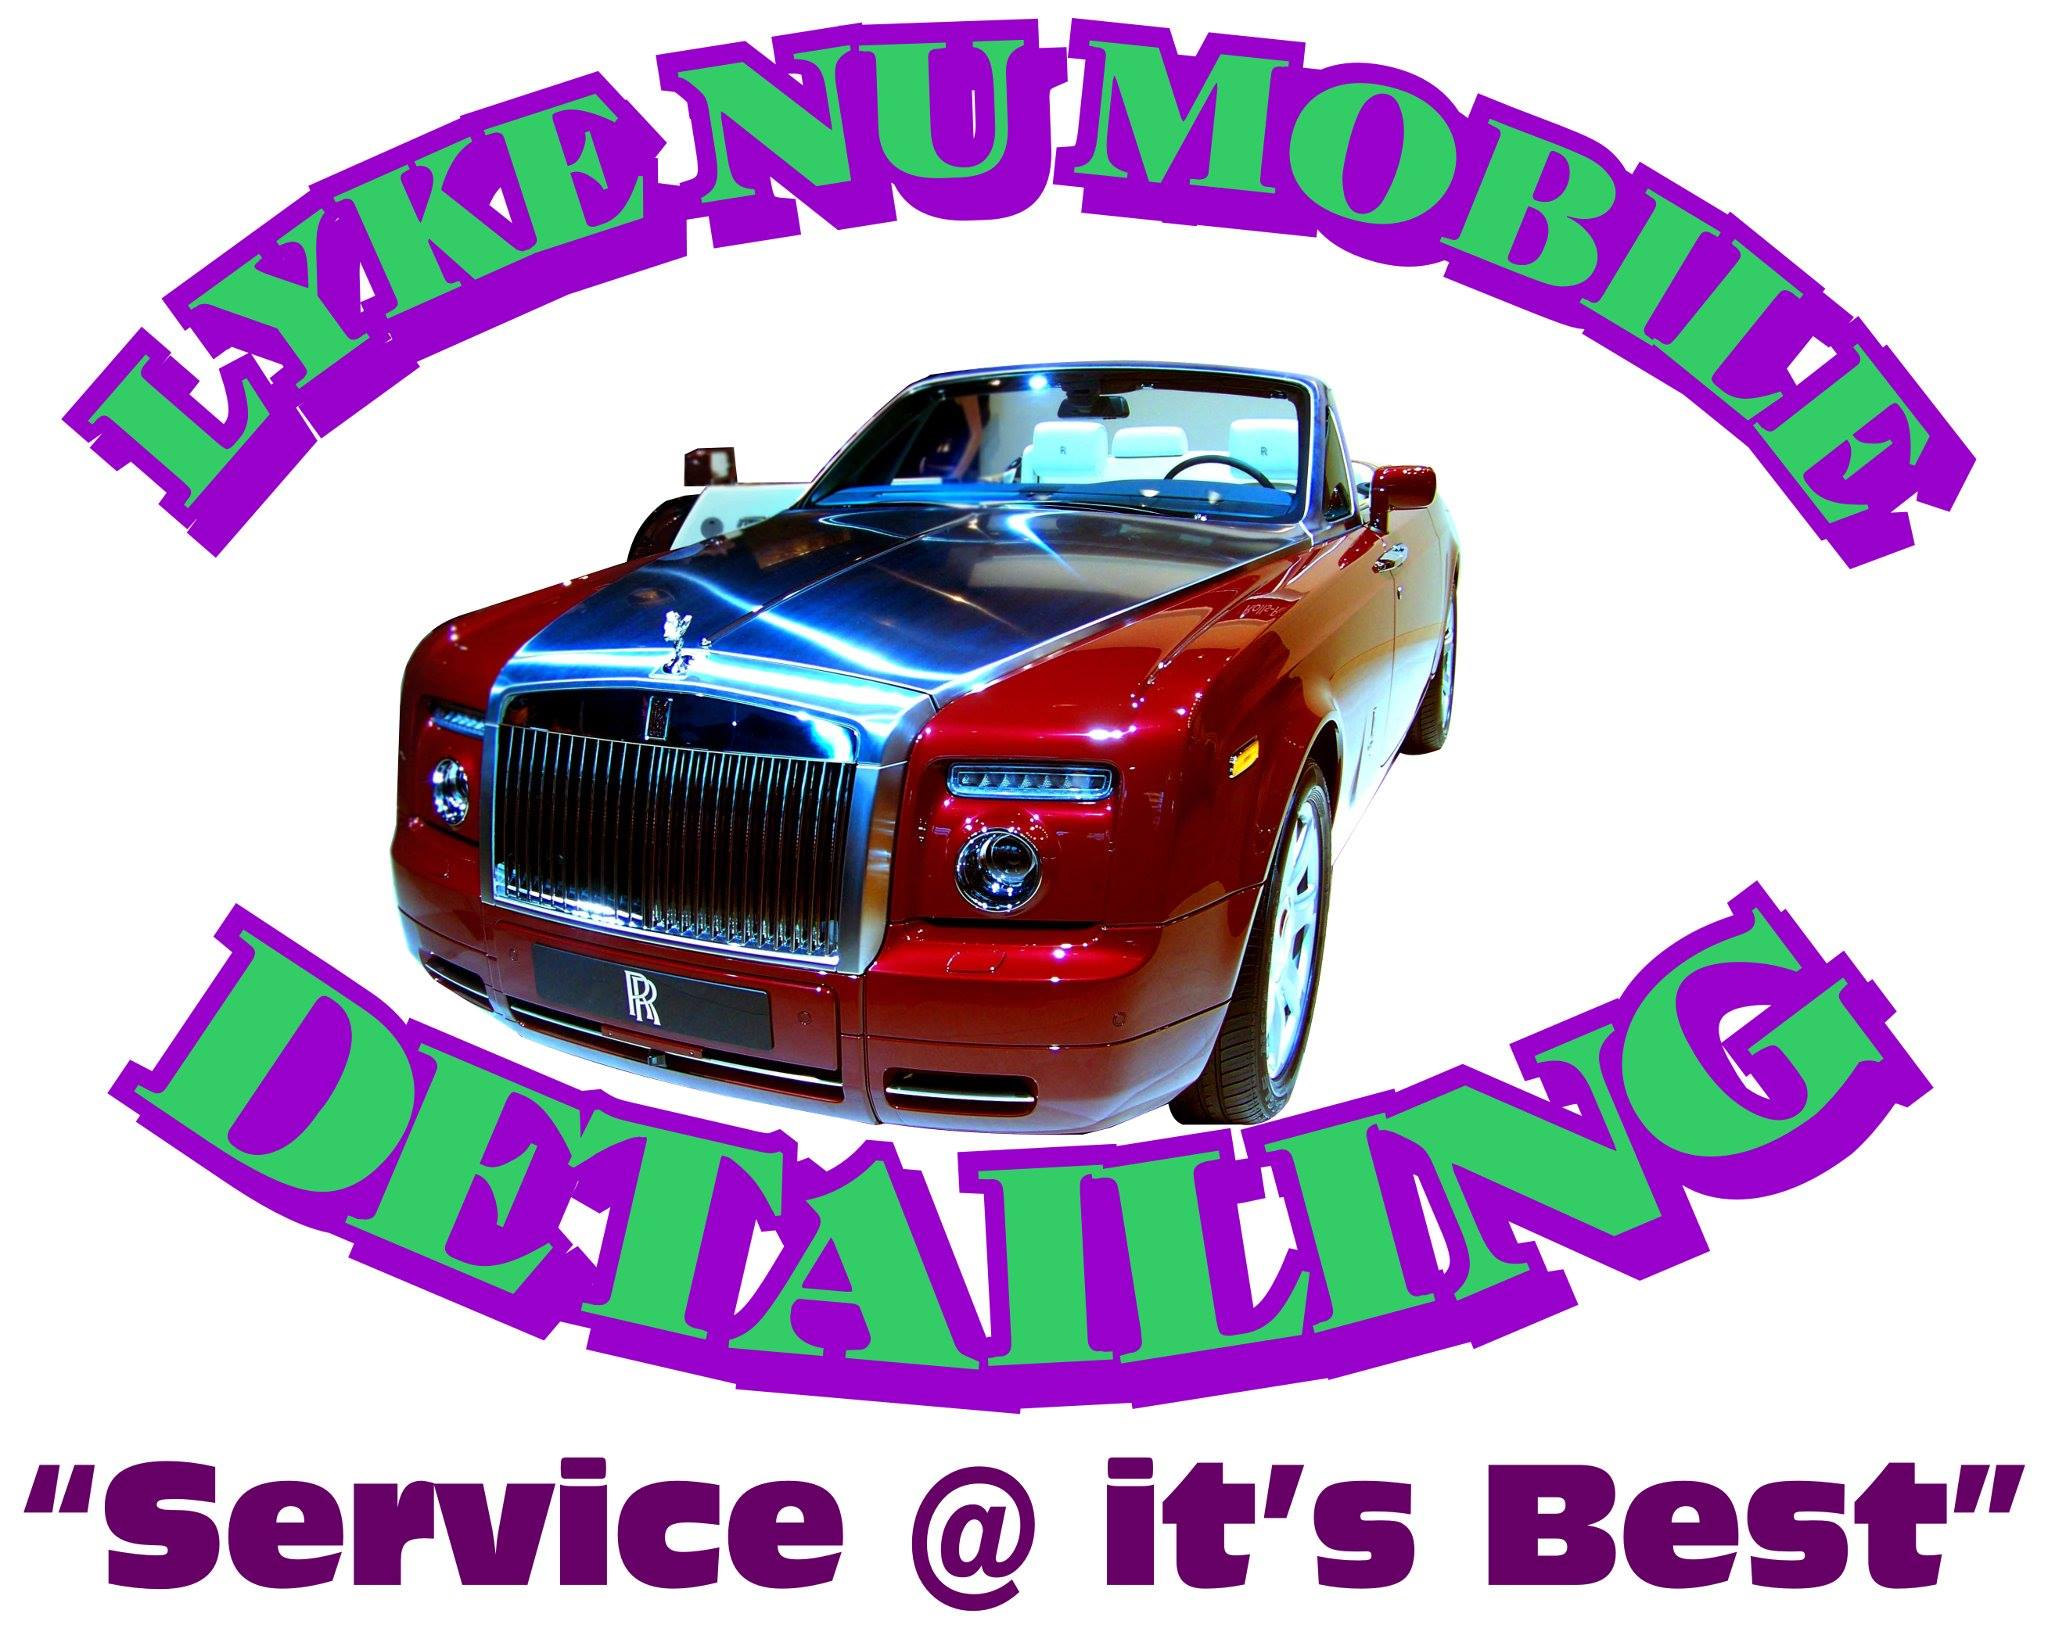 Lykenu Detailing - CONTACT BUSINESS LOGO + LINK - SCORE-ing YOUR BUSINESS EPISODE 86 with Neiguel Connell - TITLE IMAGE